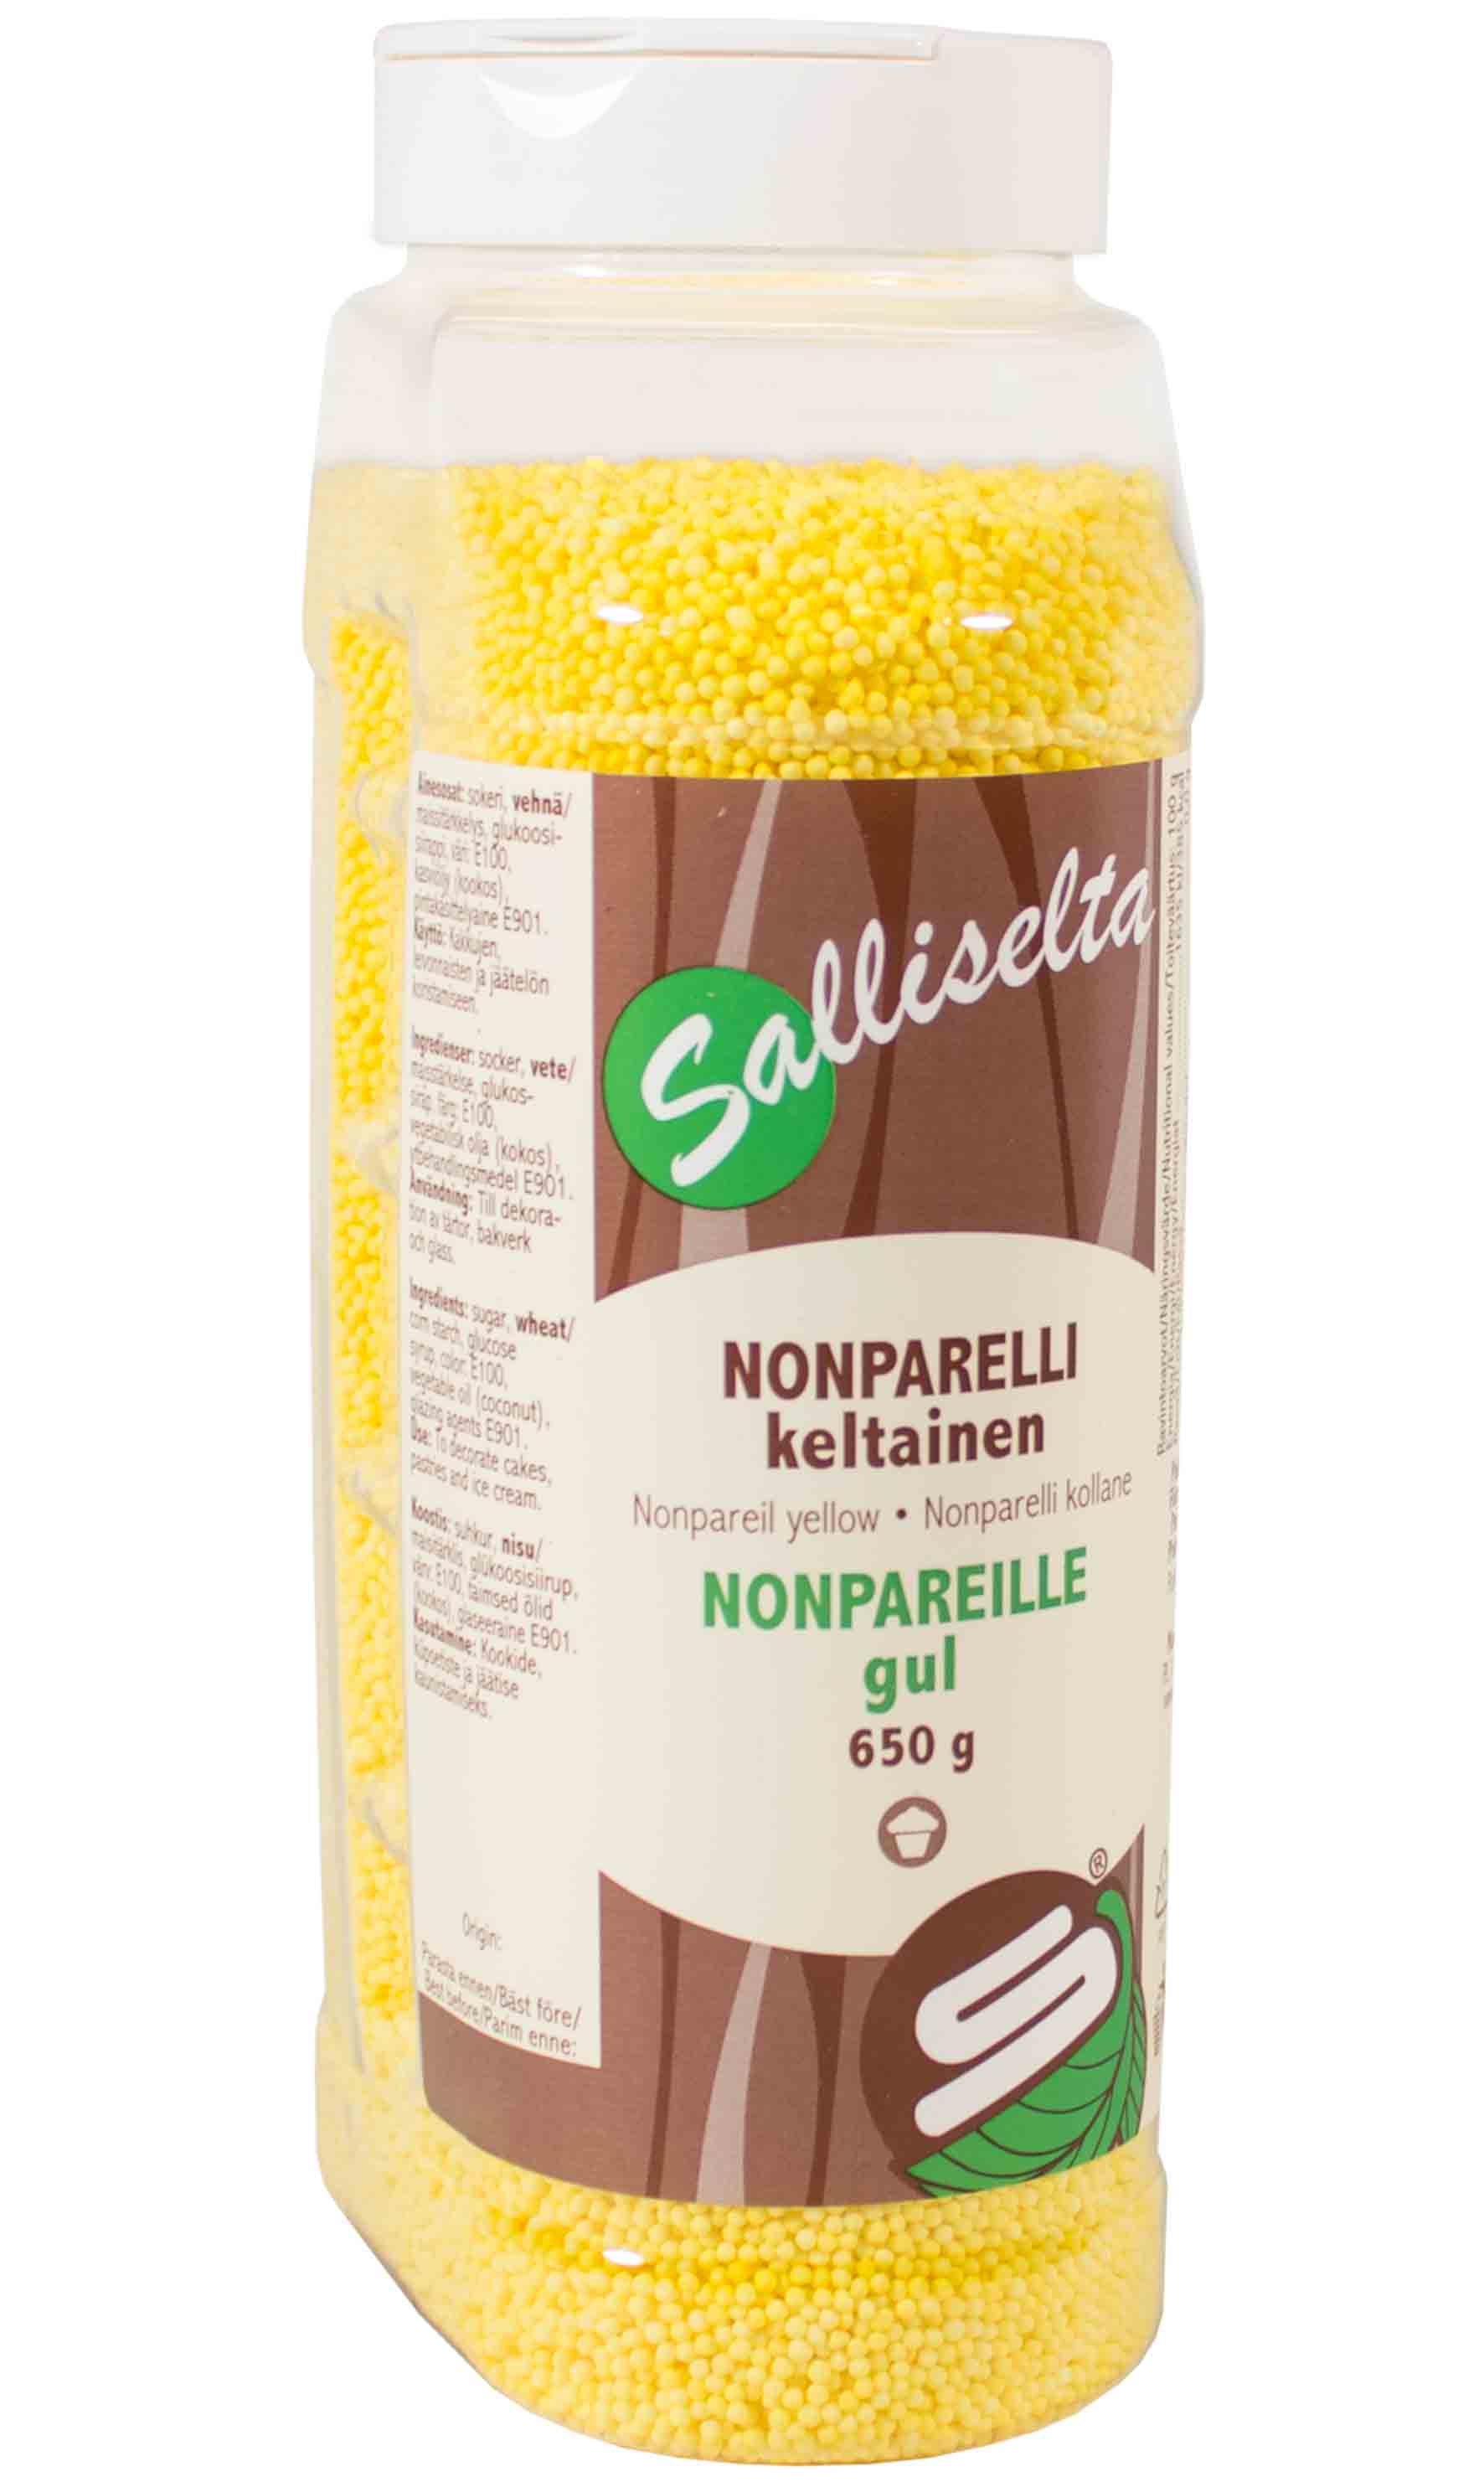 Nonpareils yellow 650 g